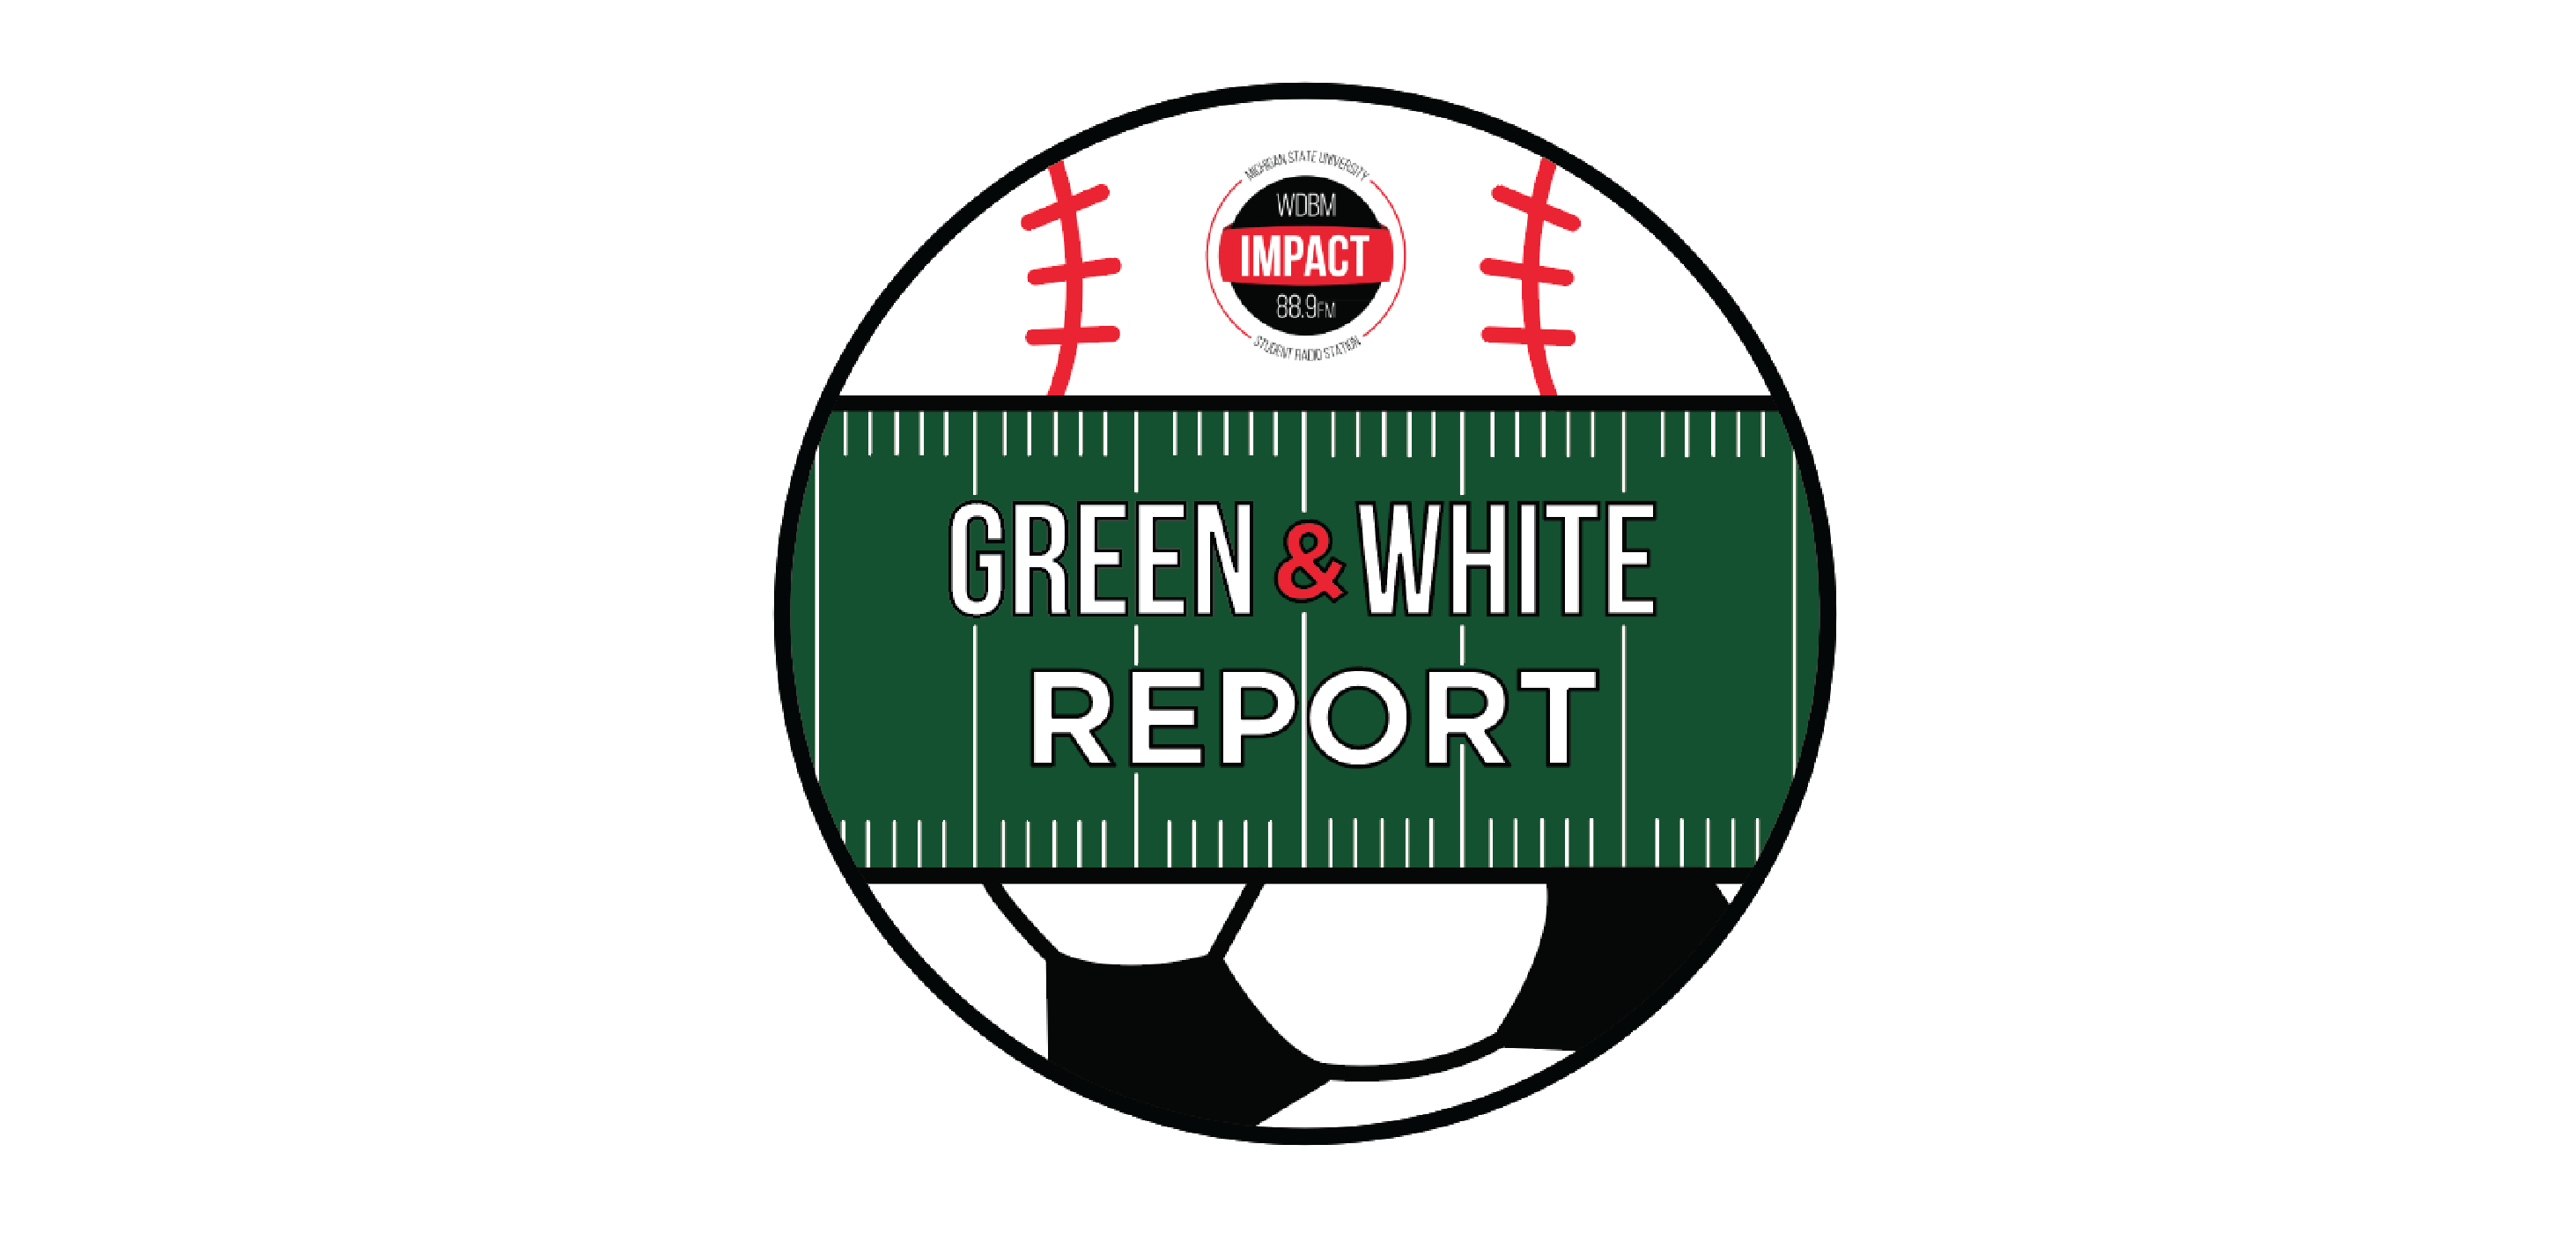 The Green & White Report - 04/28/19 - The Undercurrent collab, Where's Ryan?